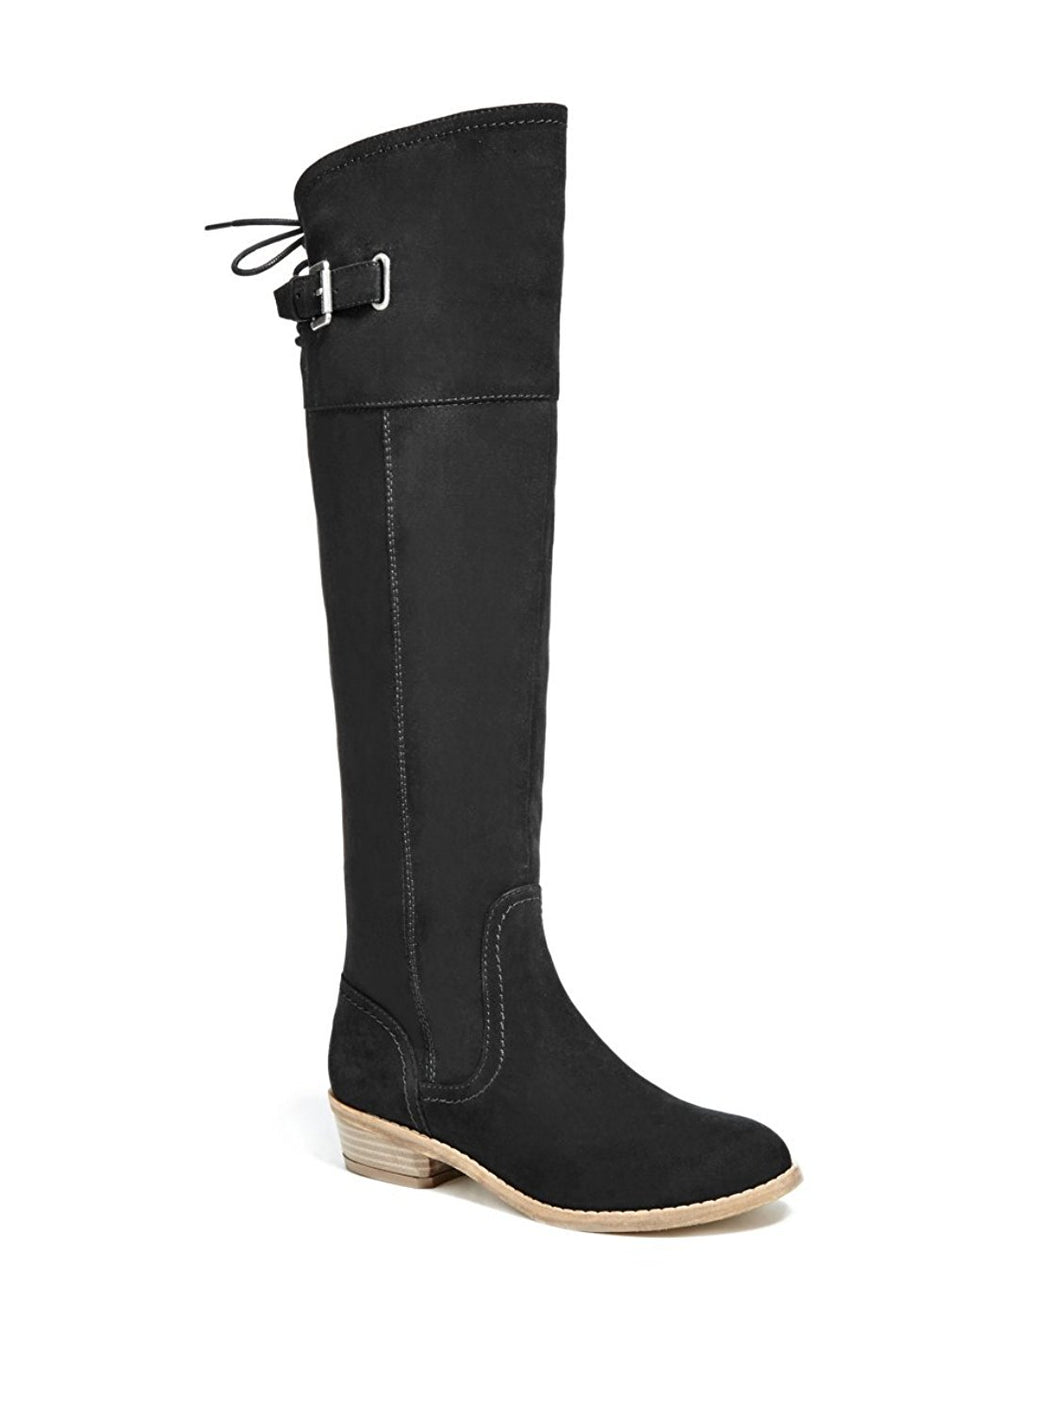 G by GUESS Womens Aikon Closed Toe Knee High Riding Boots